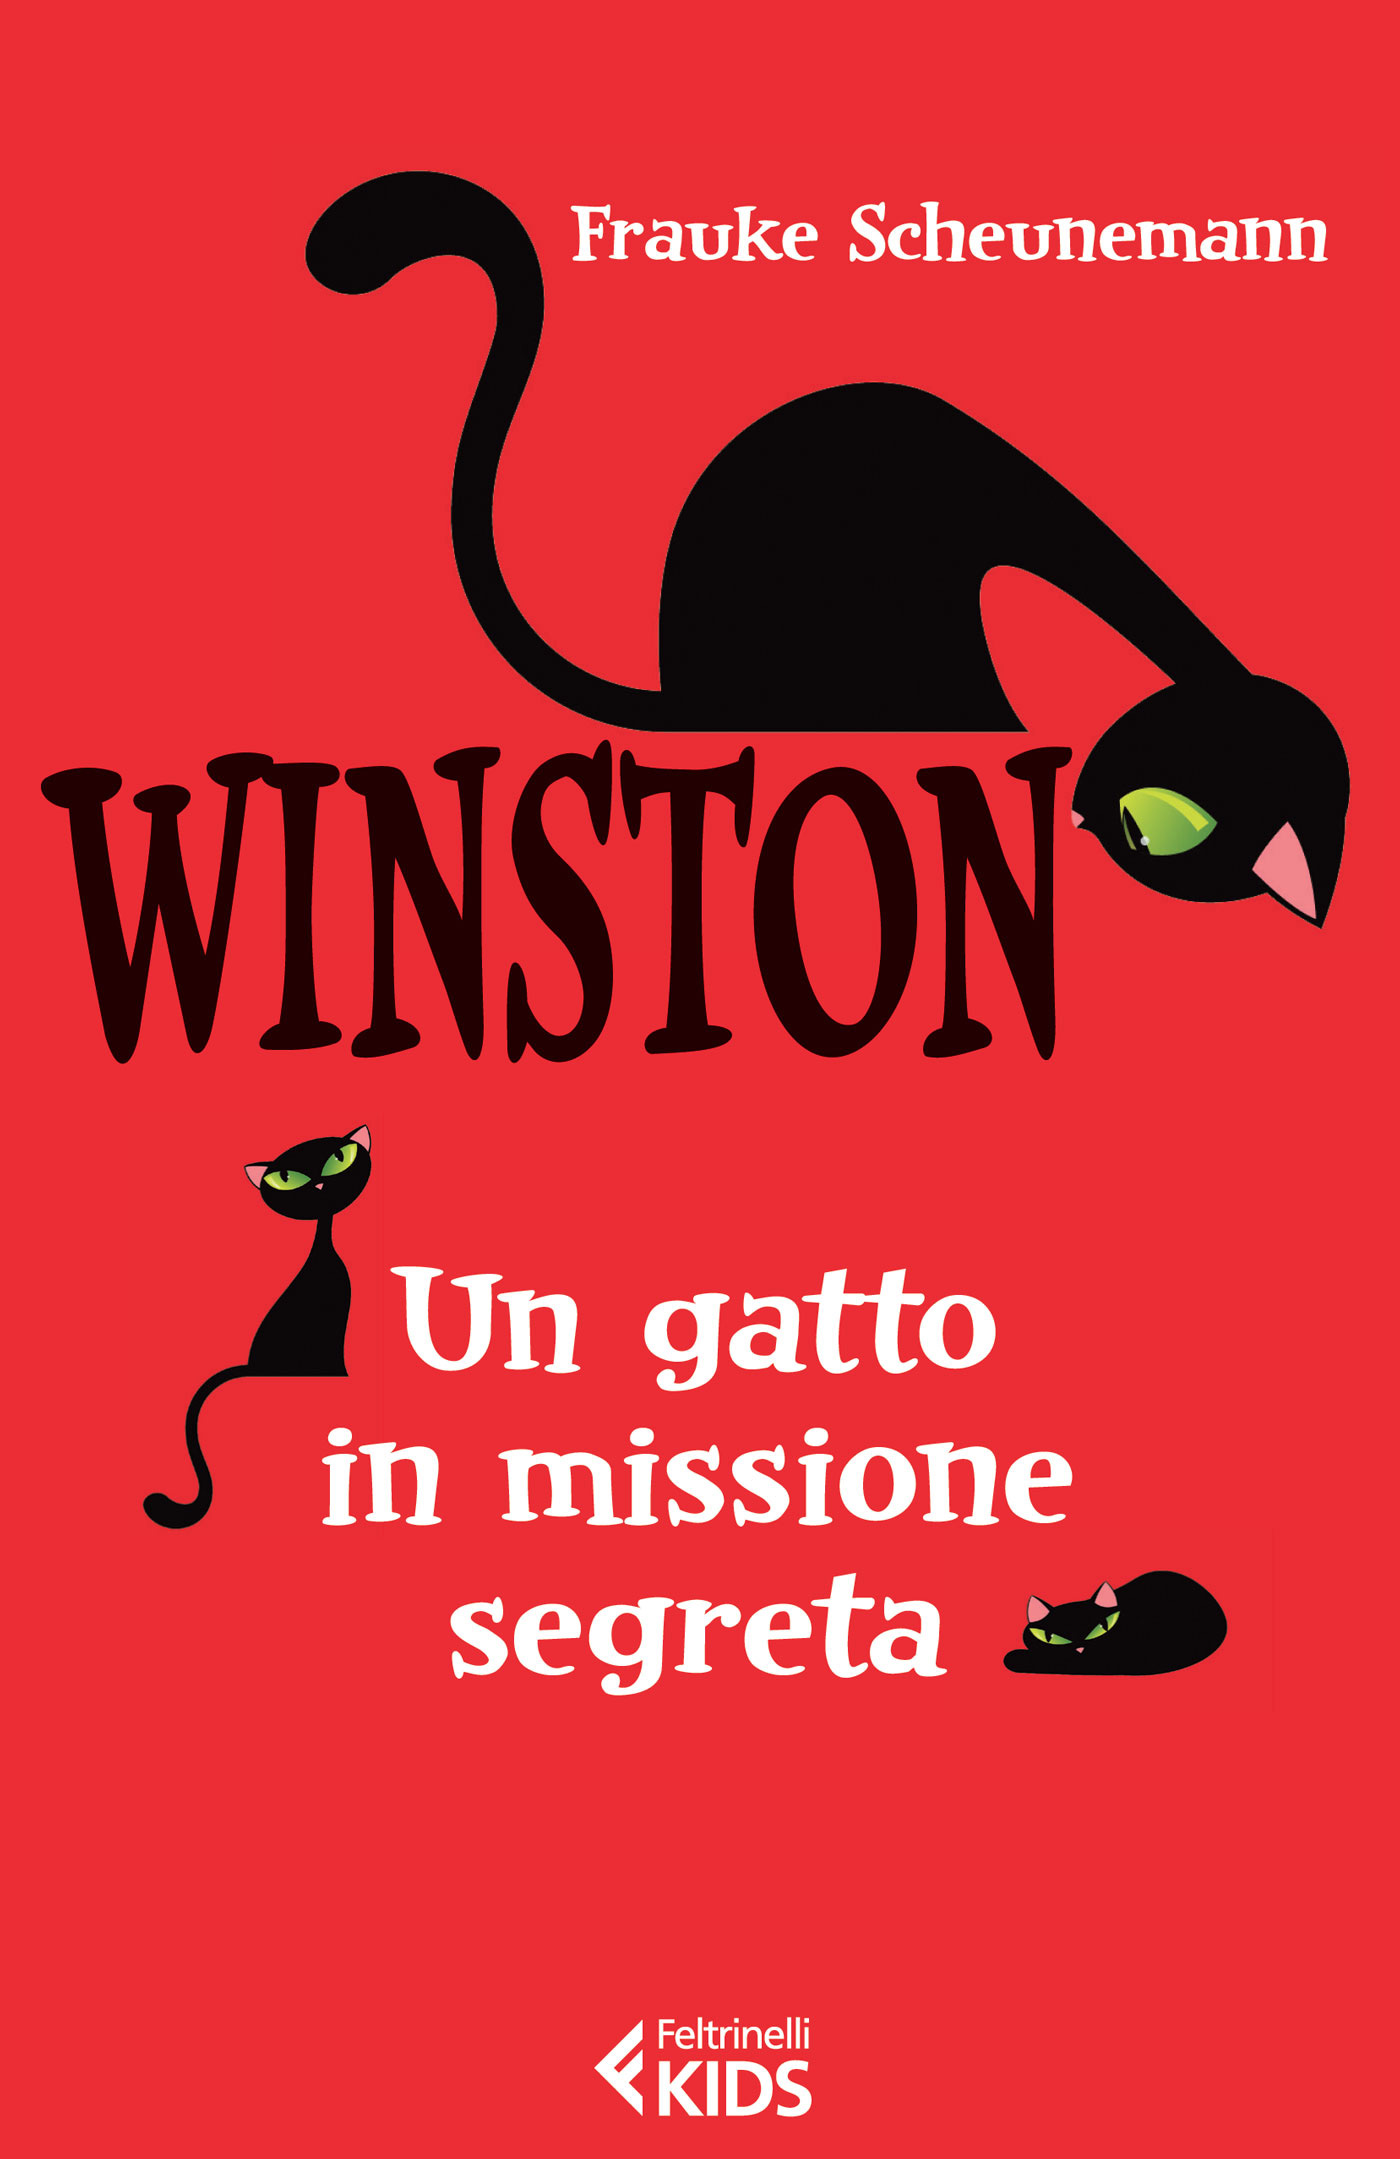 Frauke Scheunemann, Winston. Un gatto in missione segrete, Feltrinelli Kids